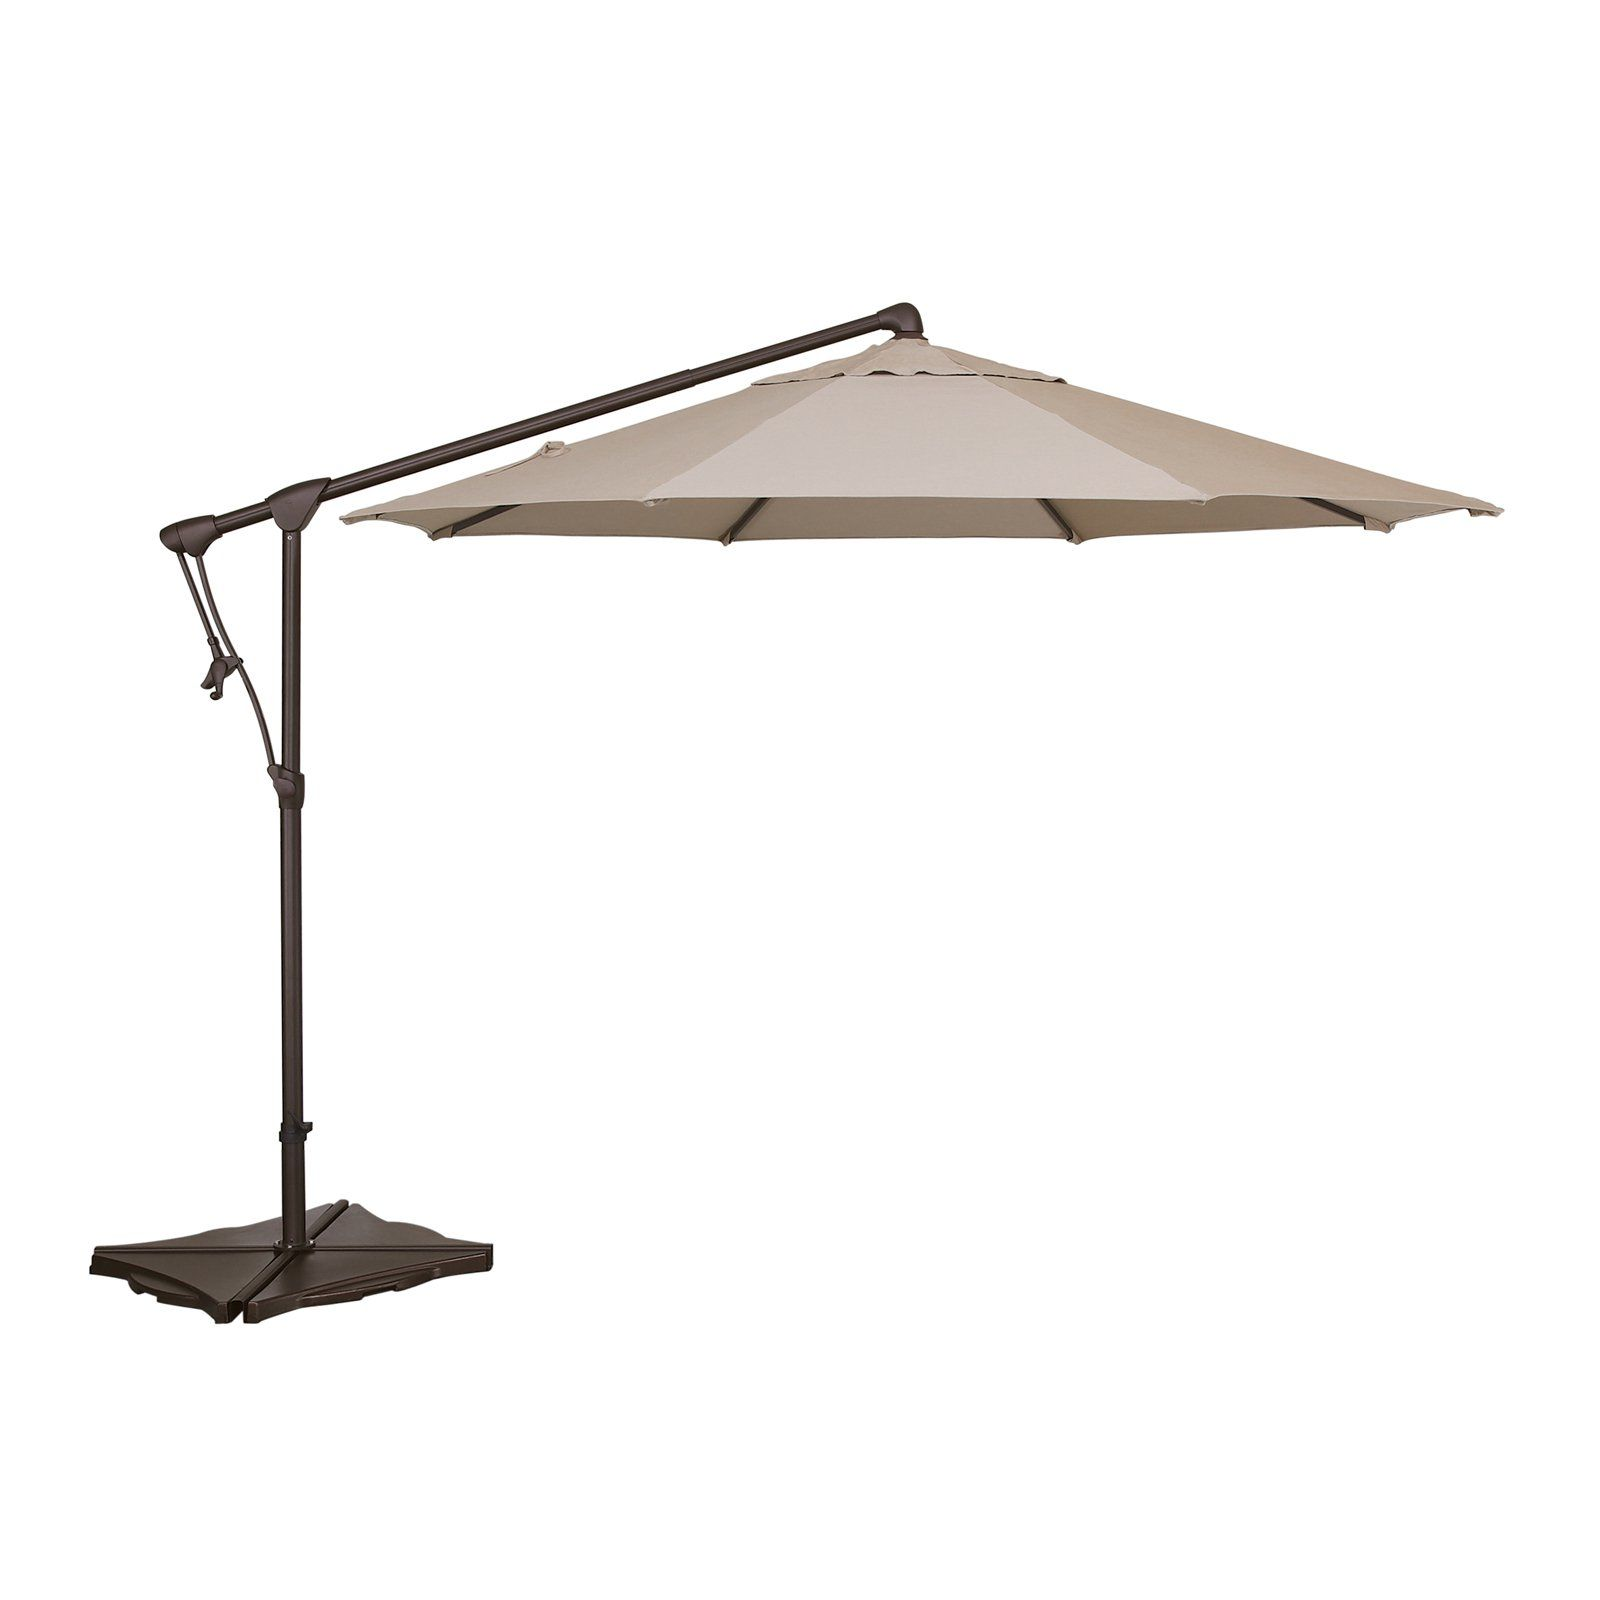 Treasure Garden 10 Ft Sunbrella Offset Patio Umbrella Antique Beige Offset Patio Umbrella Patio Umbrella Patio